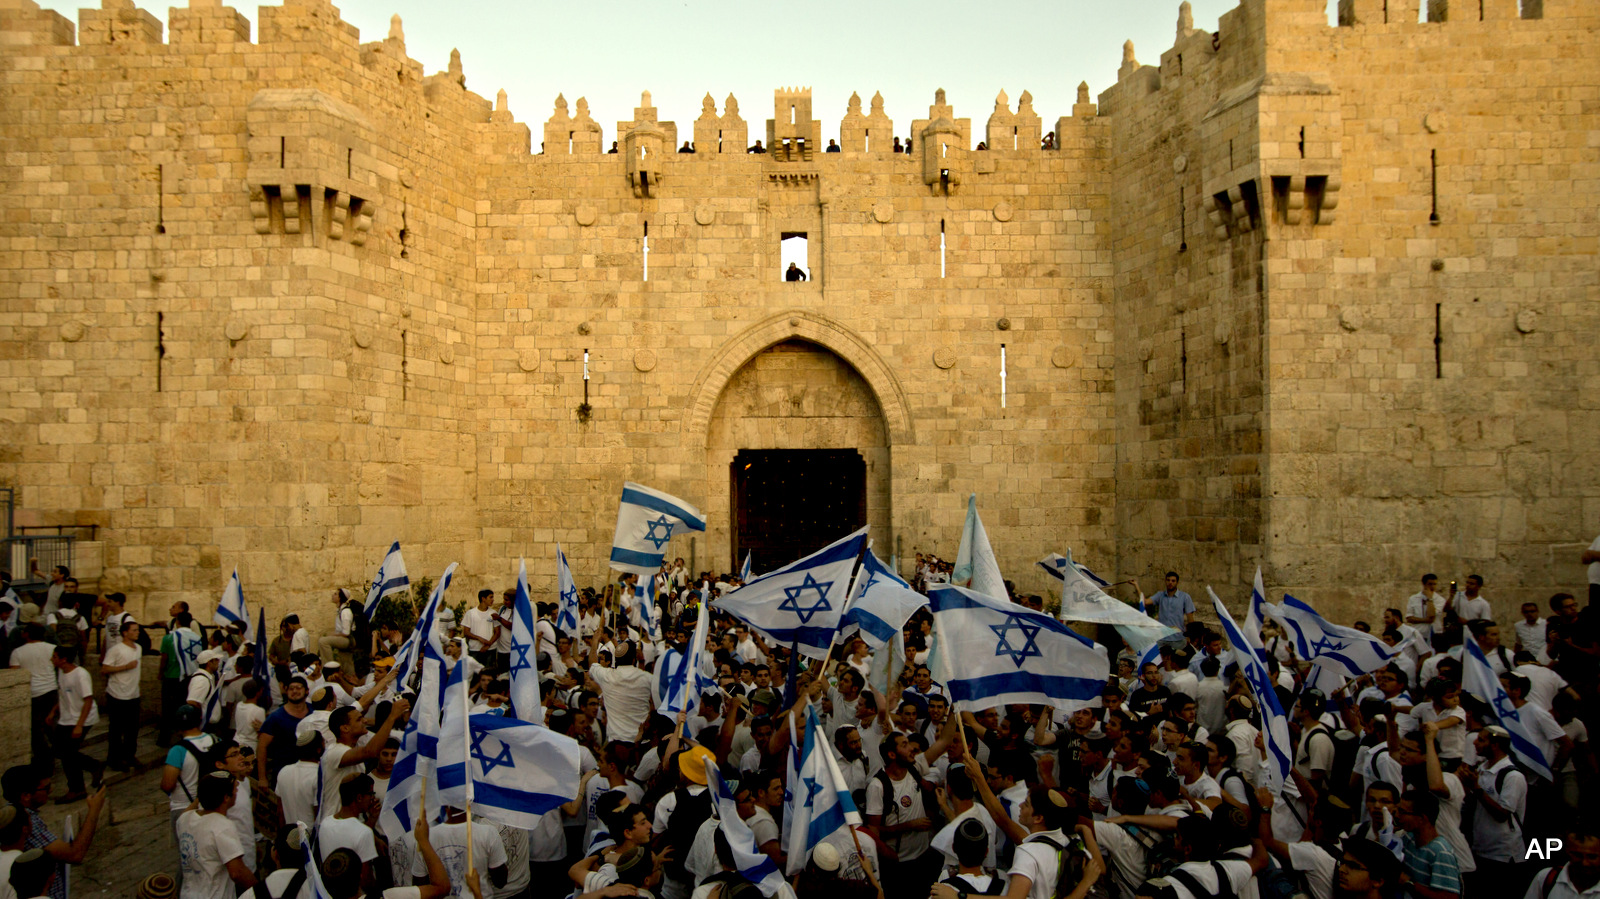 Israeli youths wave national flags as they enter Jerusalem's Old City through Damascus Gate during a march celebrating Jerusalem Day, Sunday, May 17, 2015. Under heavy police guard, thousands of Israeli demonstrators on Sunday marched through Arab sections of Jerusalem's Old City to celebrate Israel's occupation of the Palestinian land.